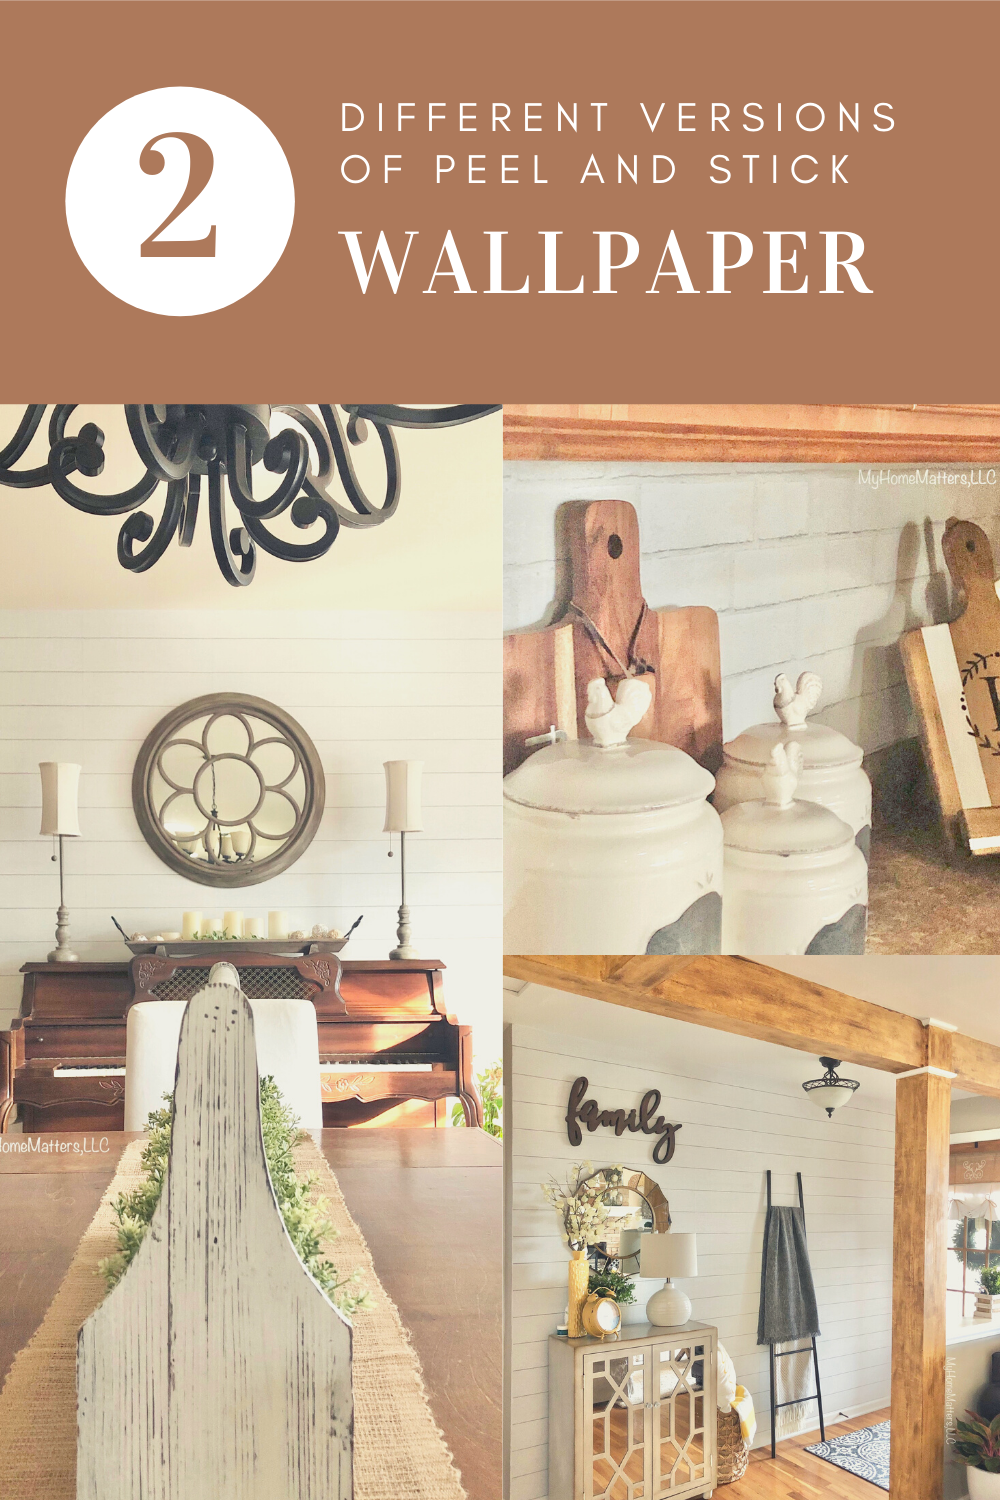 Adding Character With Wallpaper Peel And Stick Wallpaper Brick Wallpaper Peel And Stick Wallpaper